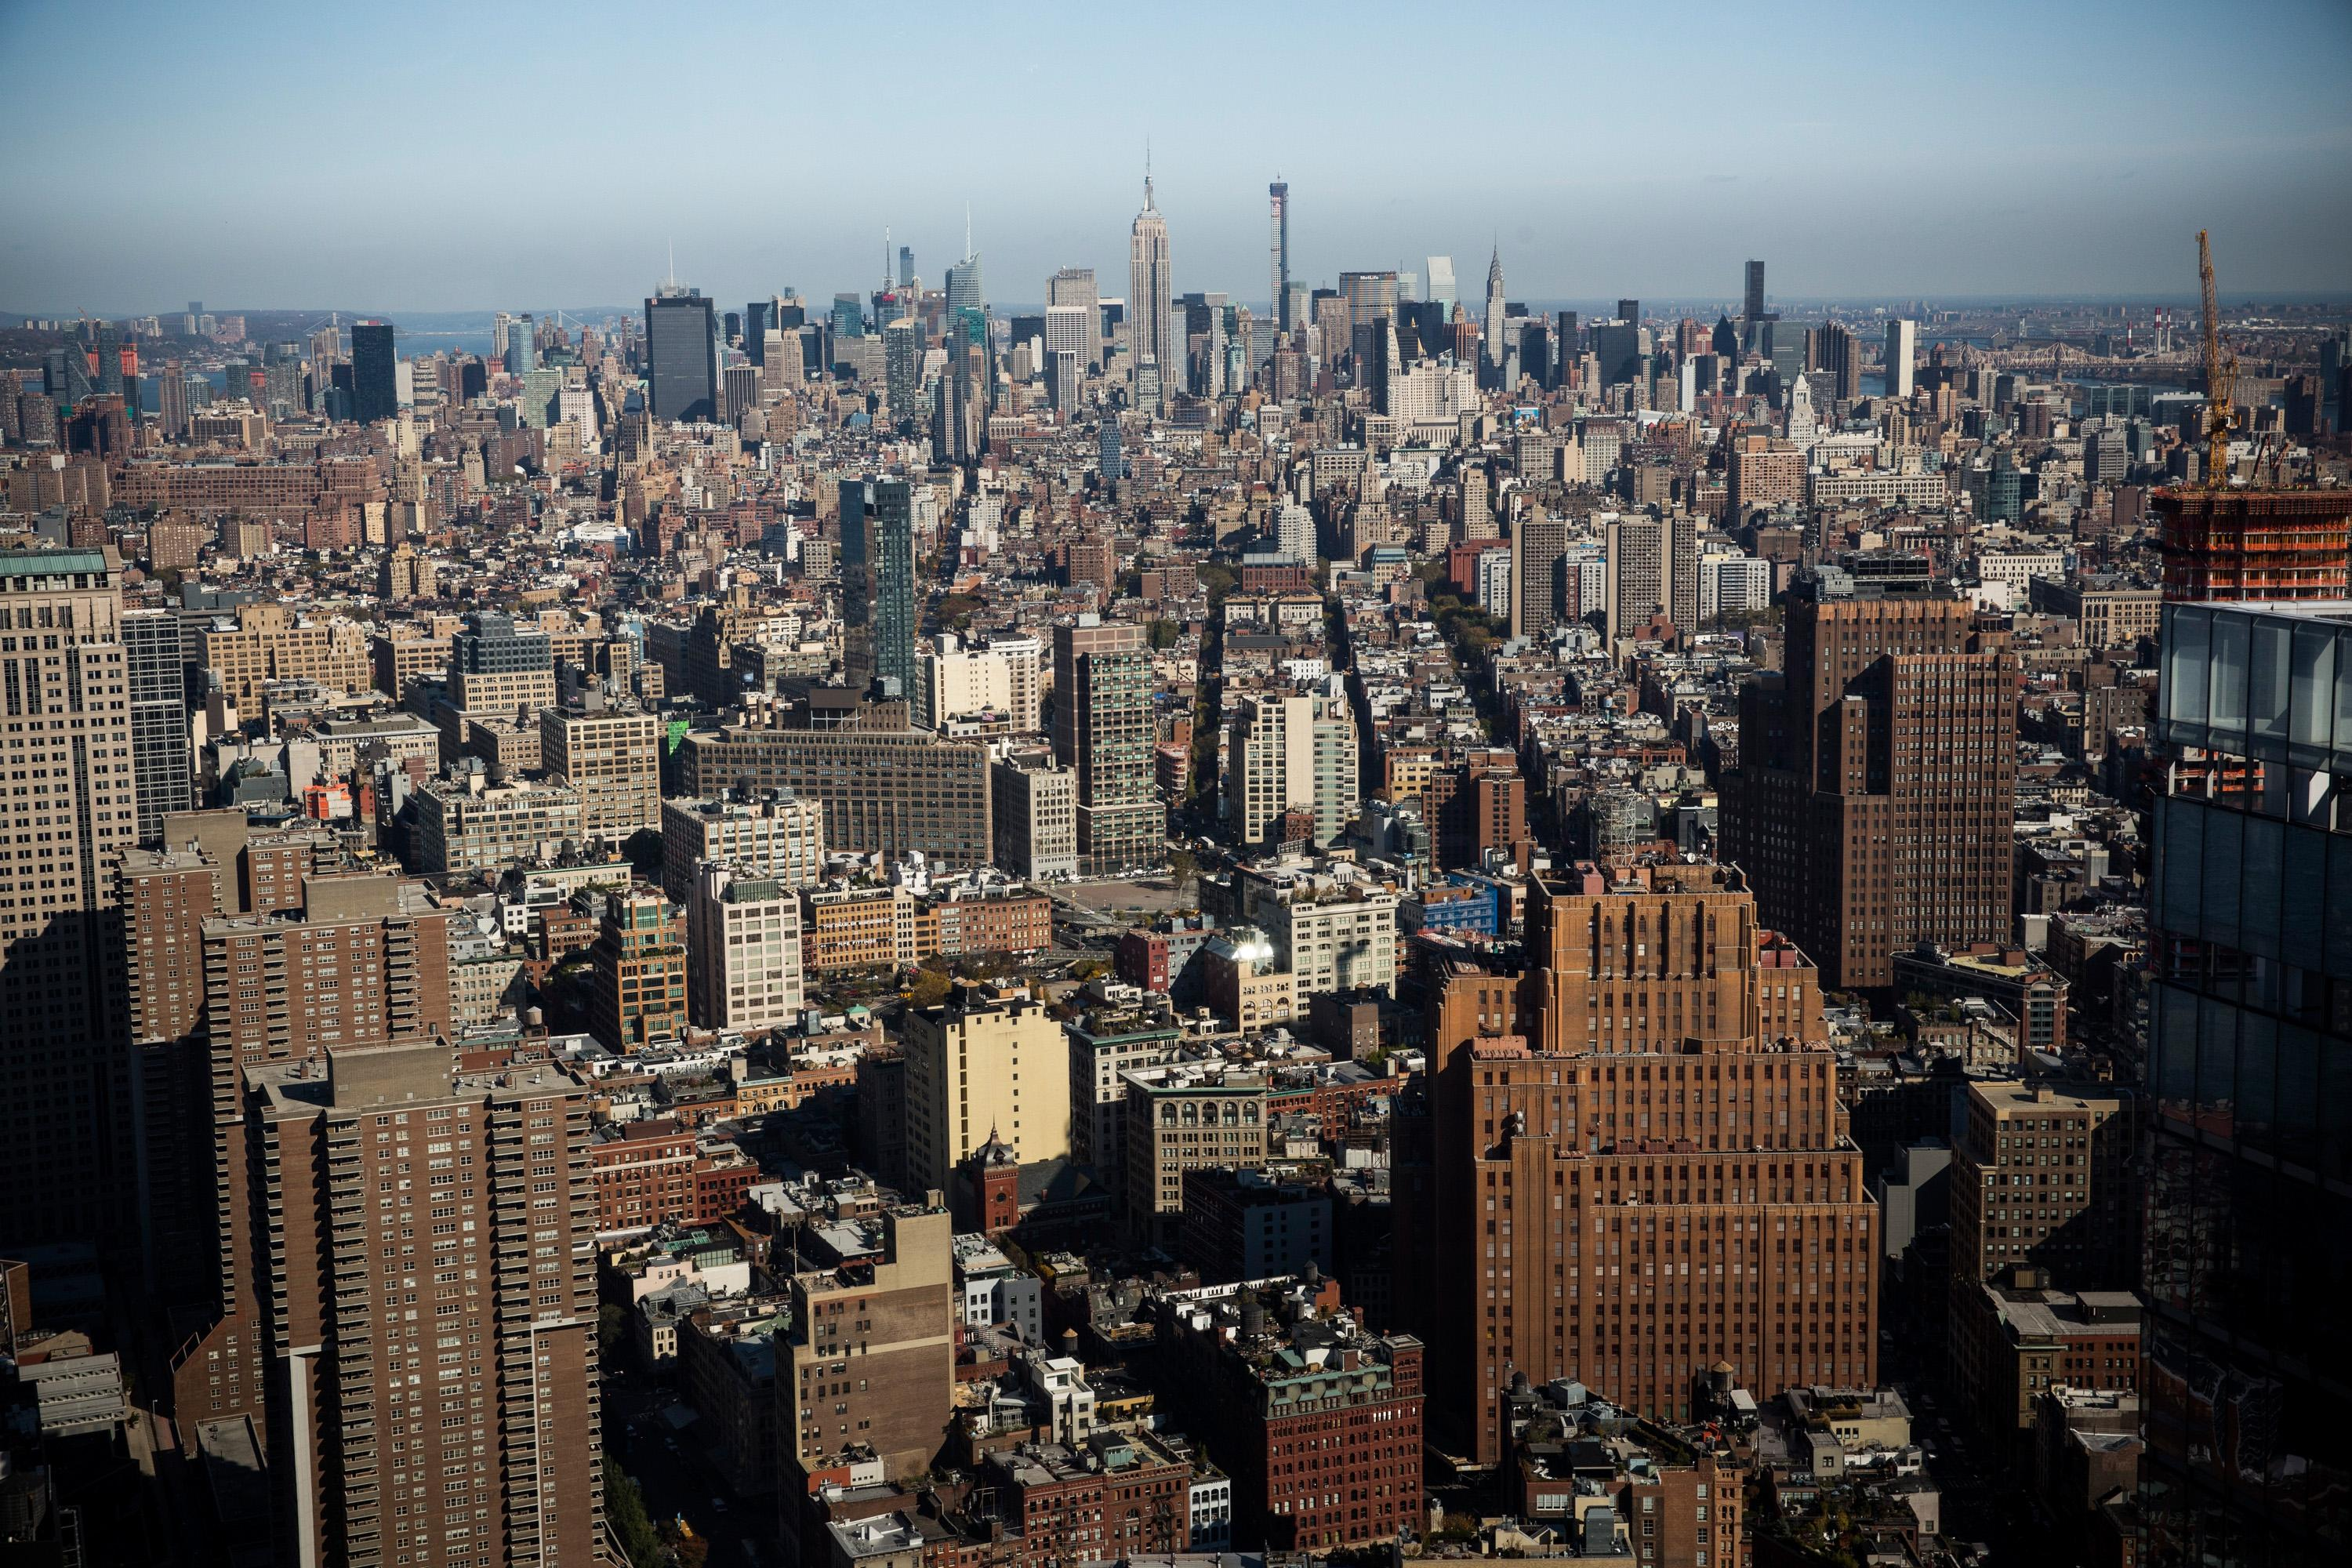 Some think a Brexit could bolster the real estate market in certain U.S. cities.